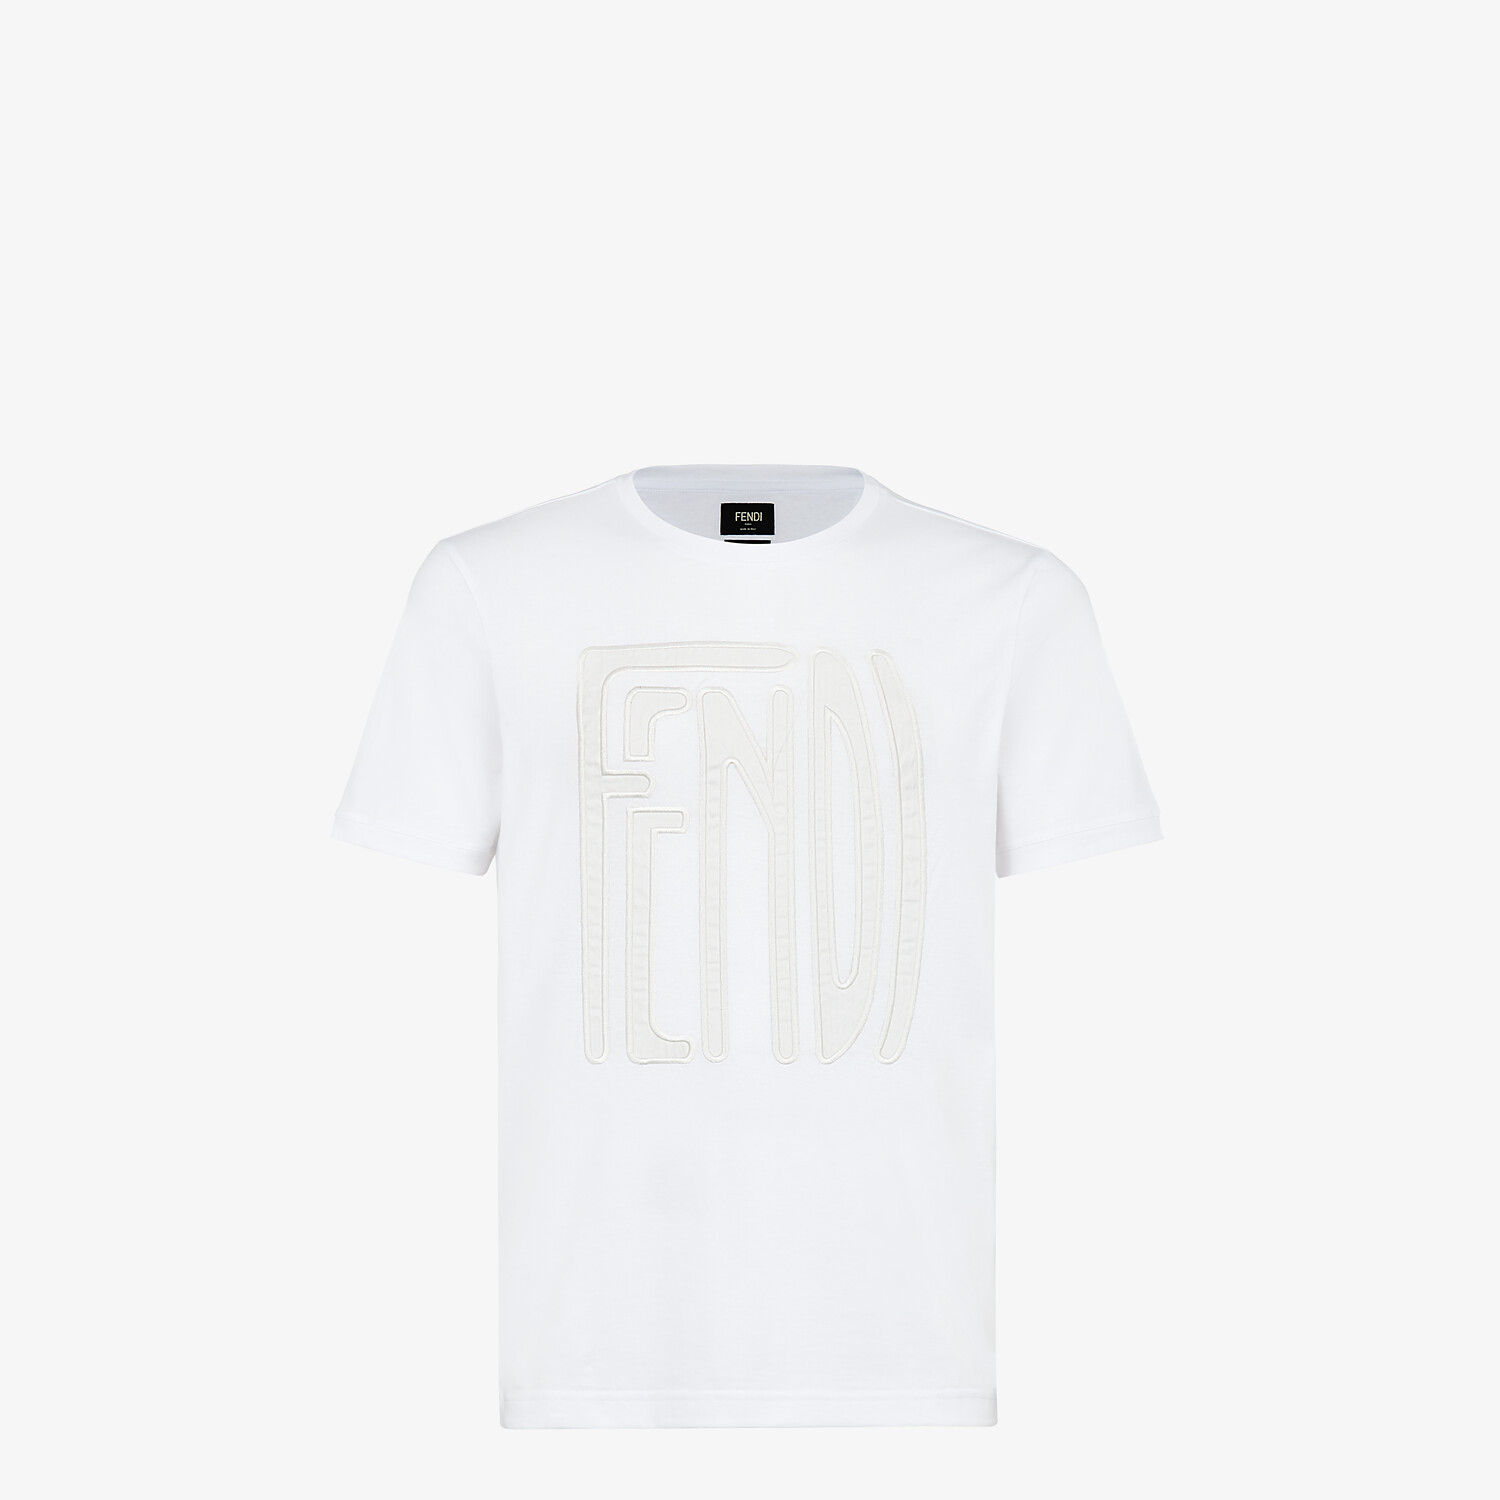 FENDI T-SHIRT - Fendi X Anrealage cotton T-shirt - view 1 detail